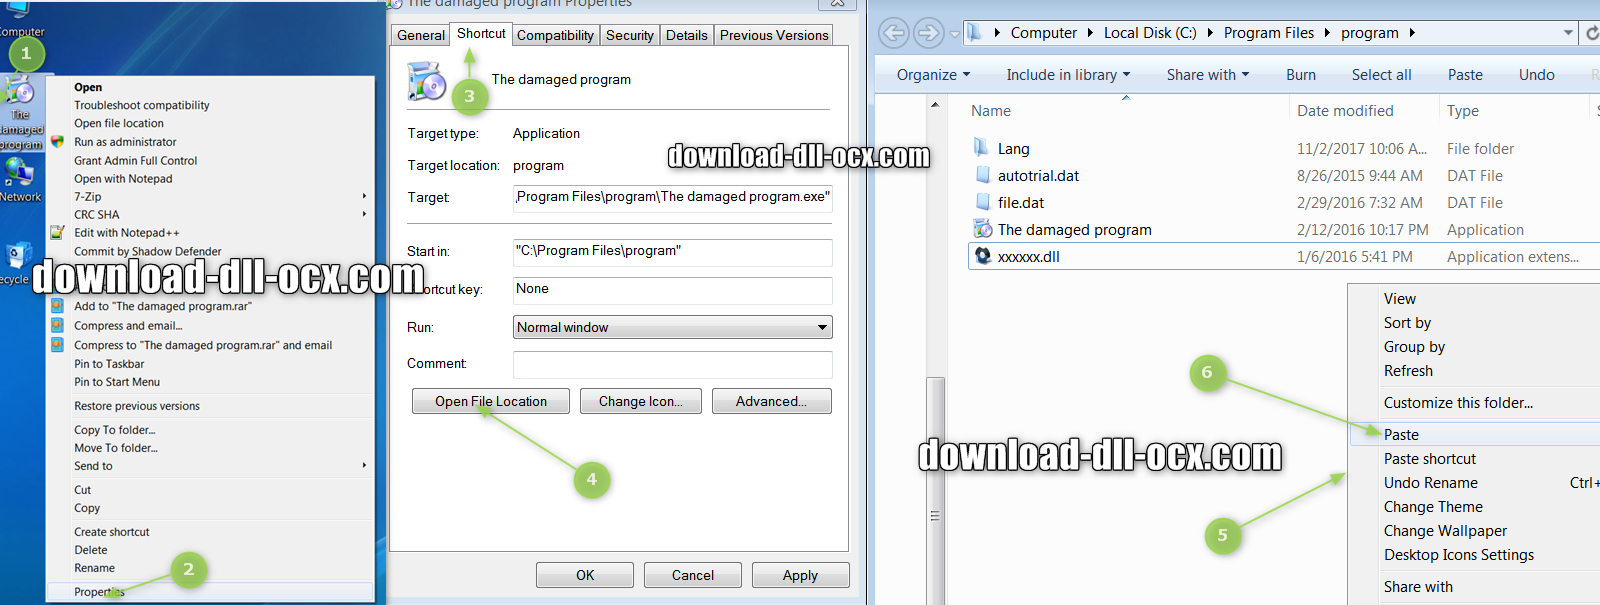 how to install Adabas2.dll file? for fix missing